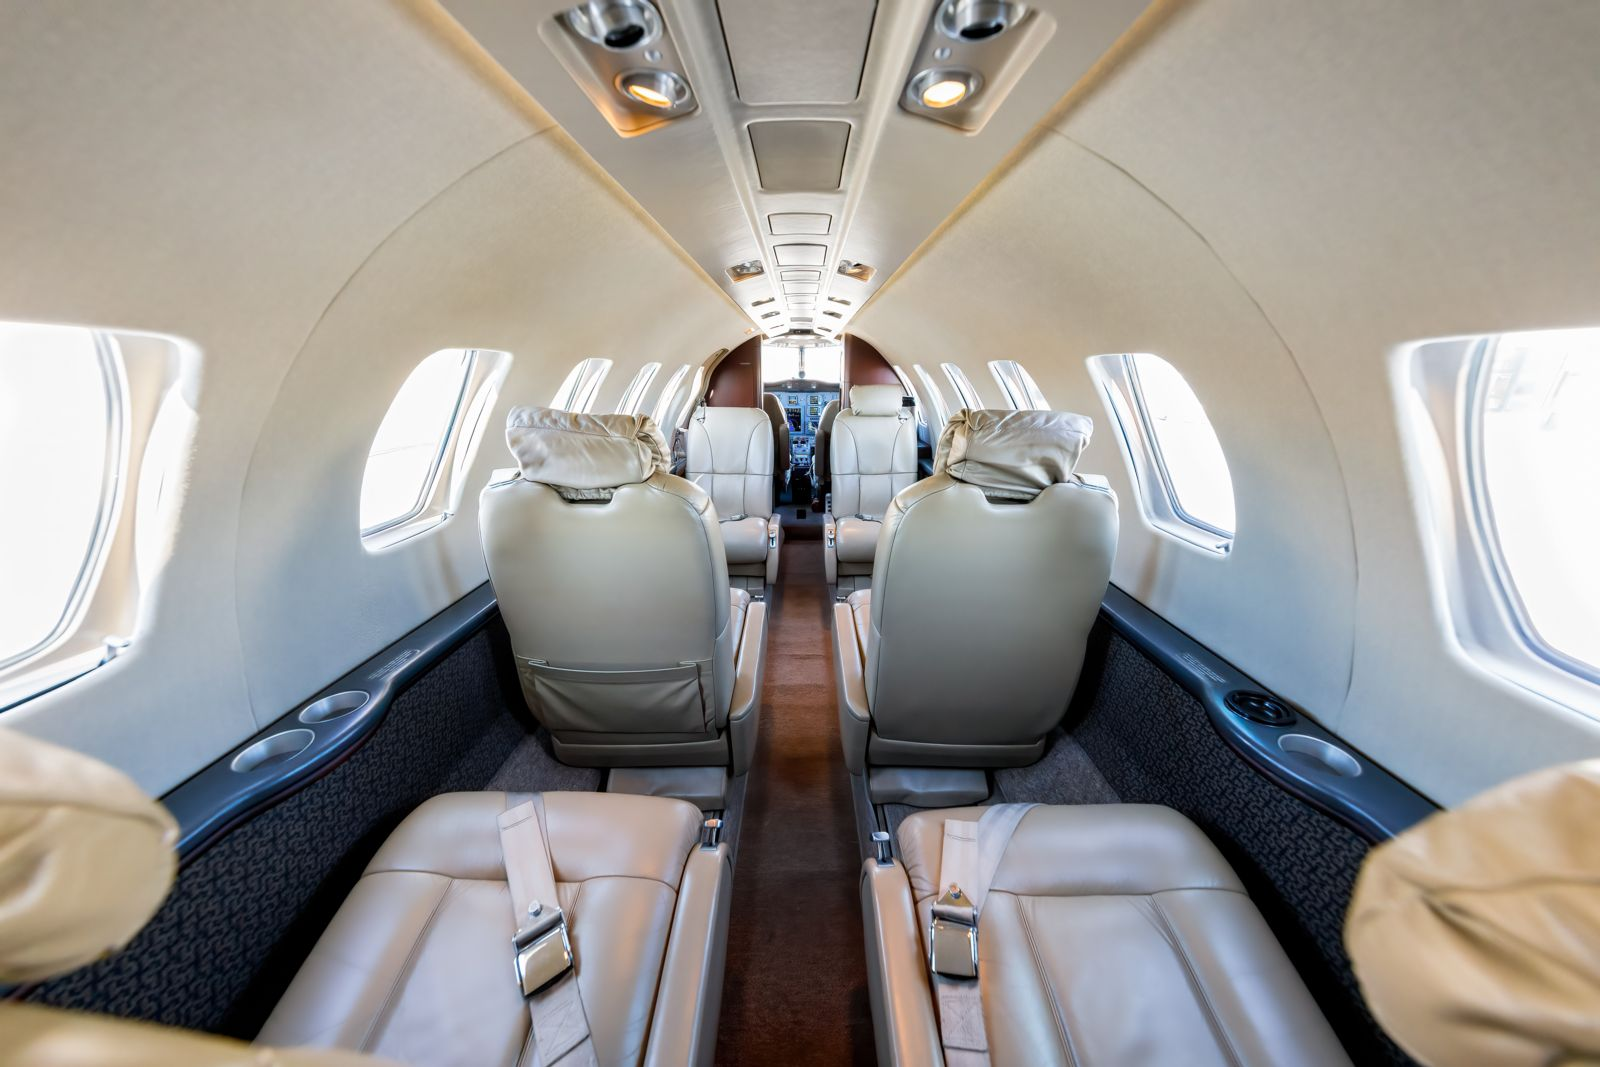 Cessna CJ2+  S/N 319 for sale | gallery image: /userfiles/images/CJ2plus_sn319/n967tg-6348.jpg